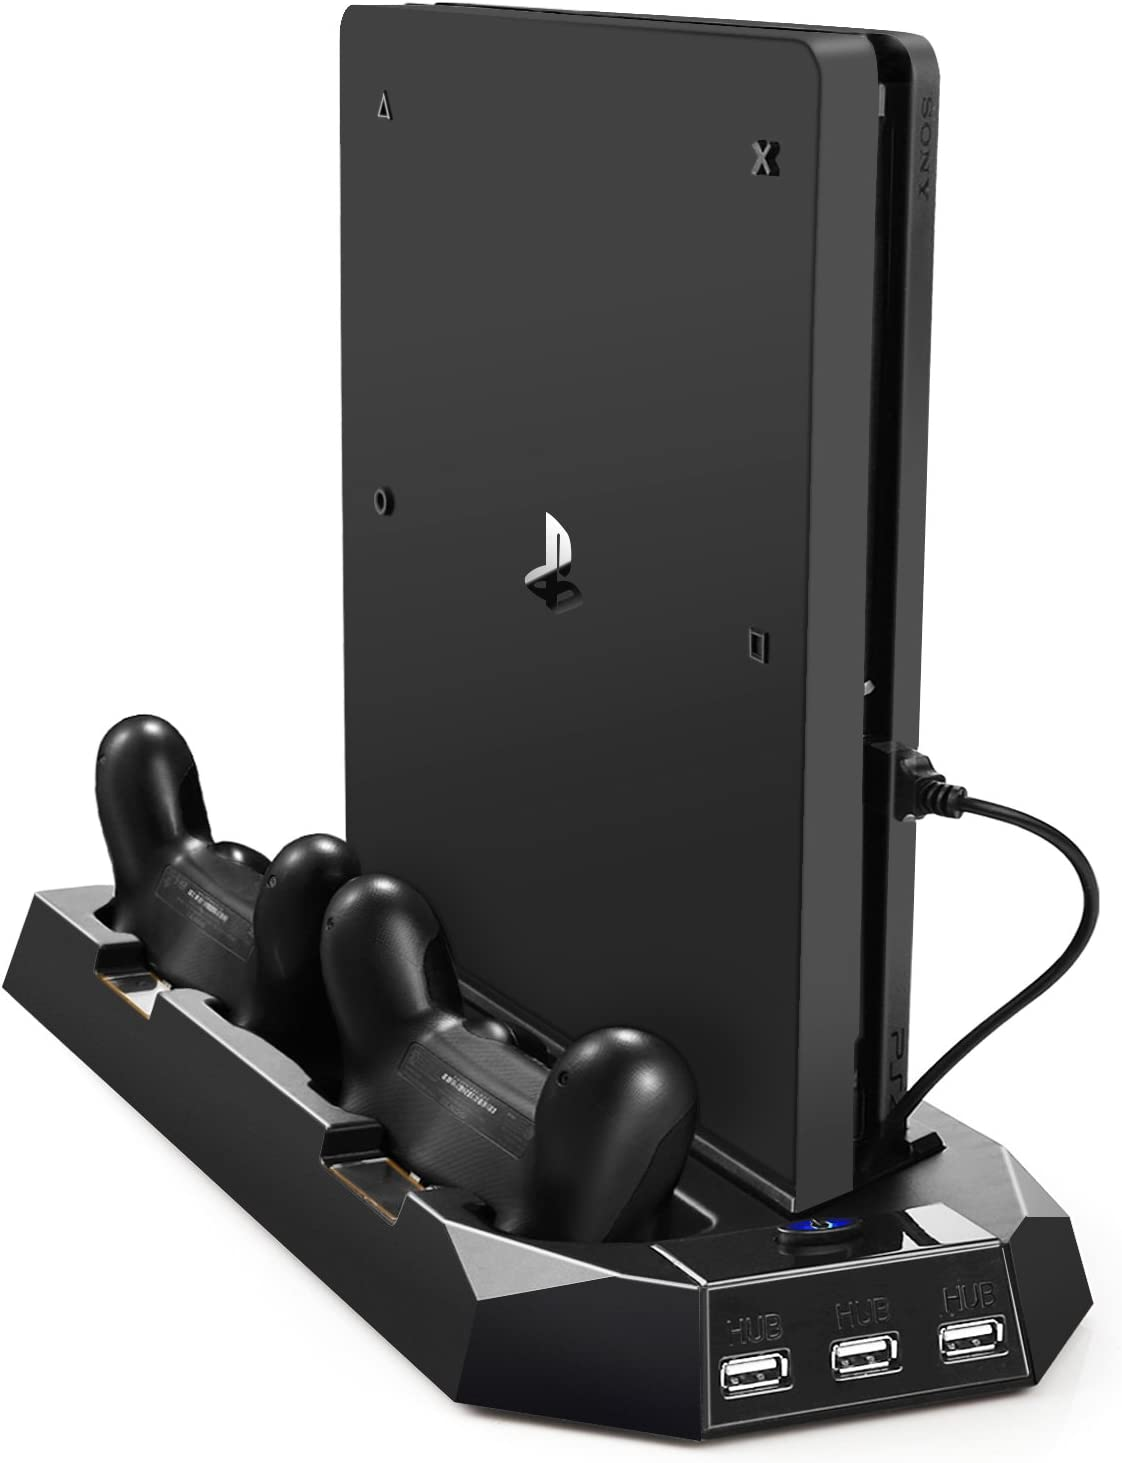 PECHAM Vertical Stand for PS4 Slim / PS4 with Cooling Fan, for Playstation 4/Slim Console, Dual Controller Charge Station, 3 HUB Port (Not for Pro)